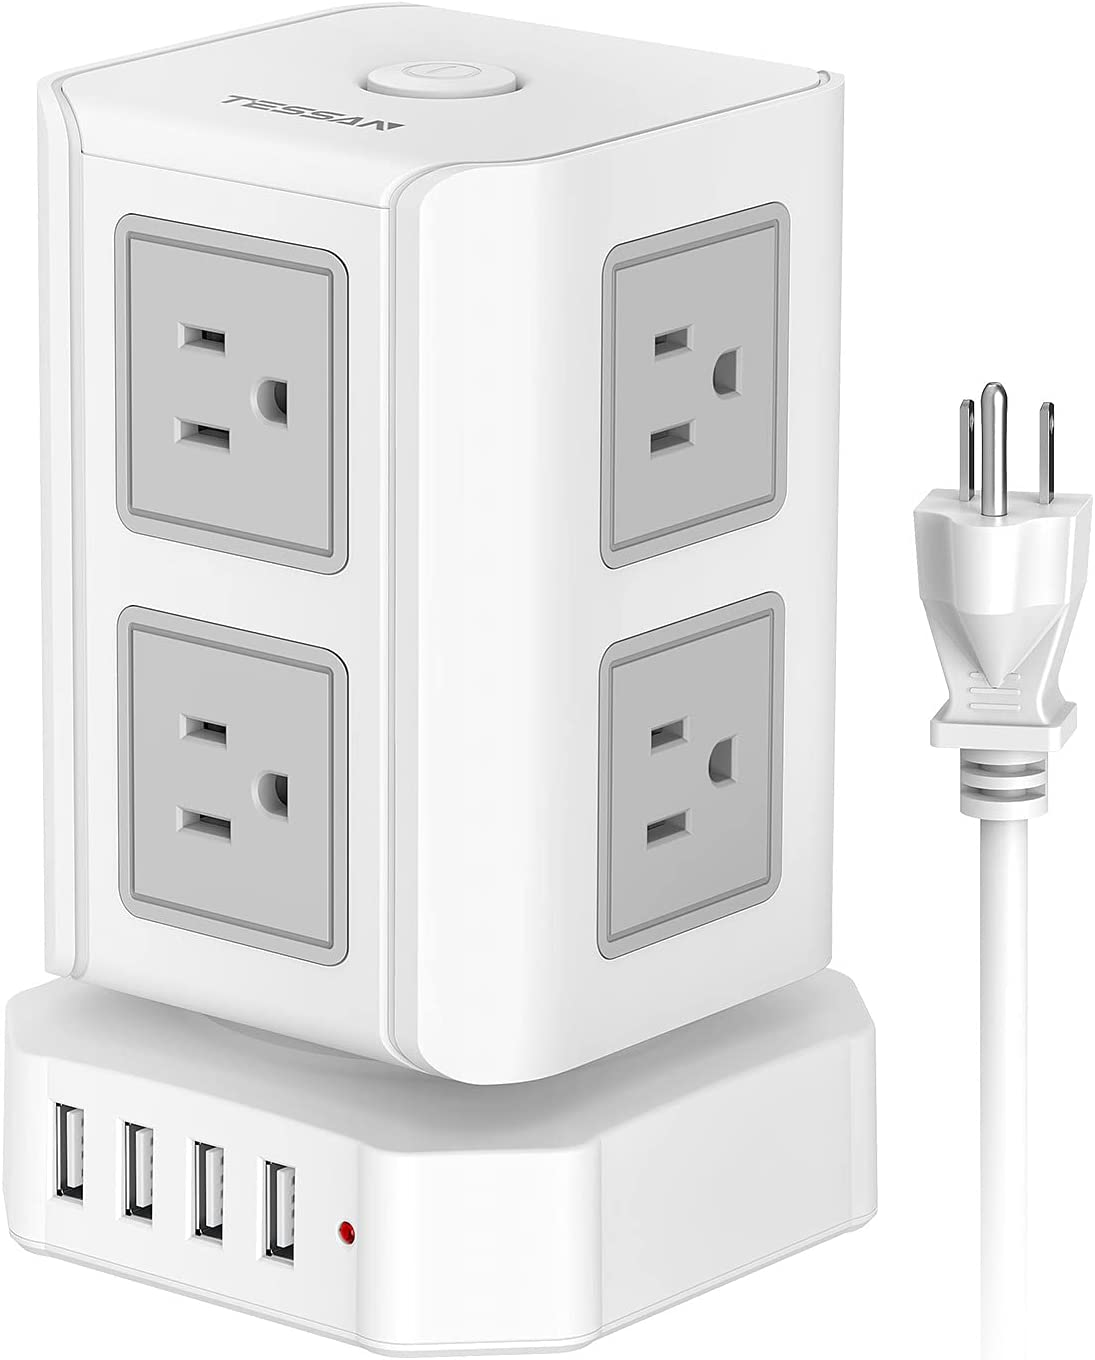 Power Finally popular brand Strip Tower TESSAN Surge Protector Super sale period limited Outlets 8 Ports 4 USB